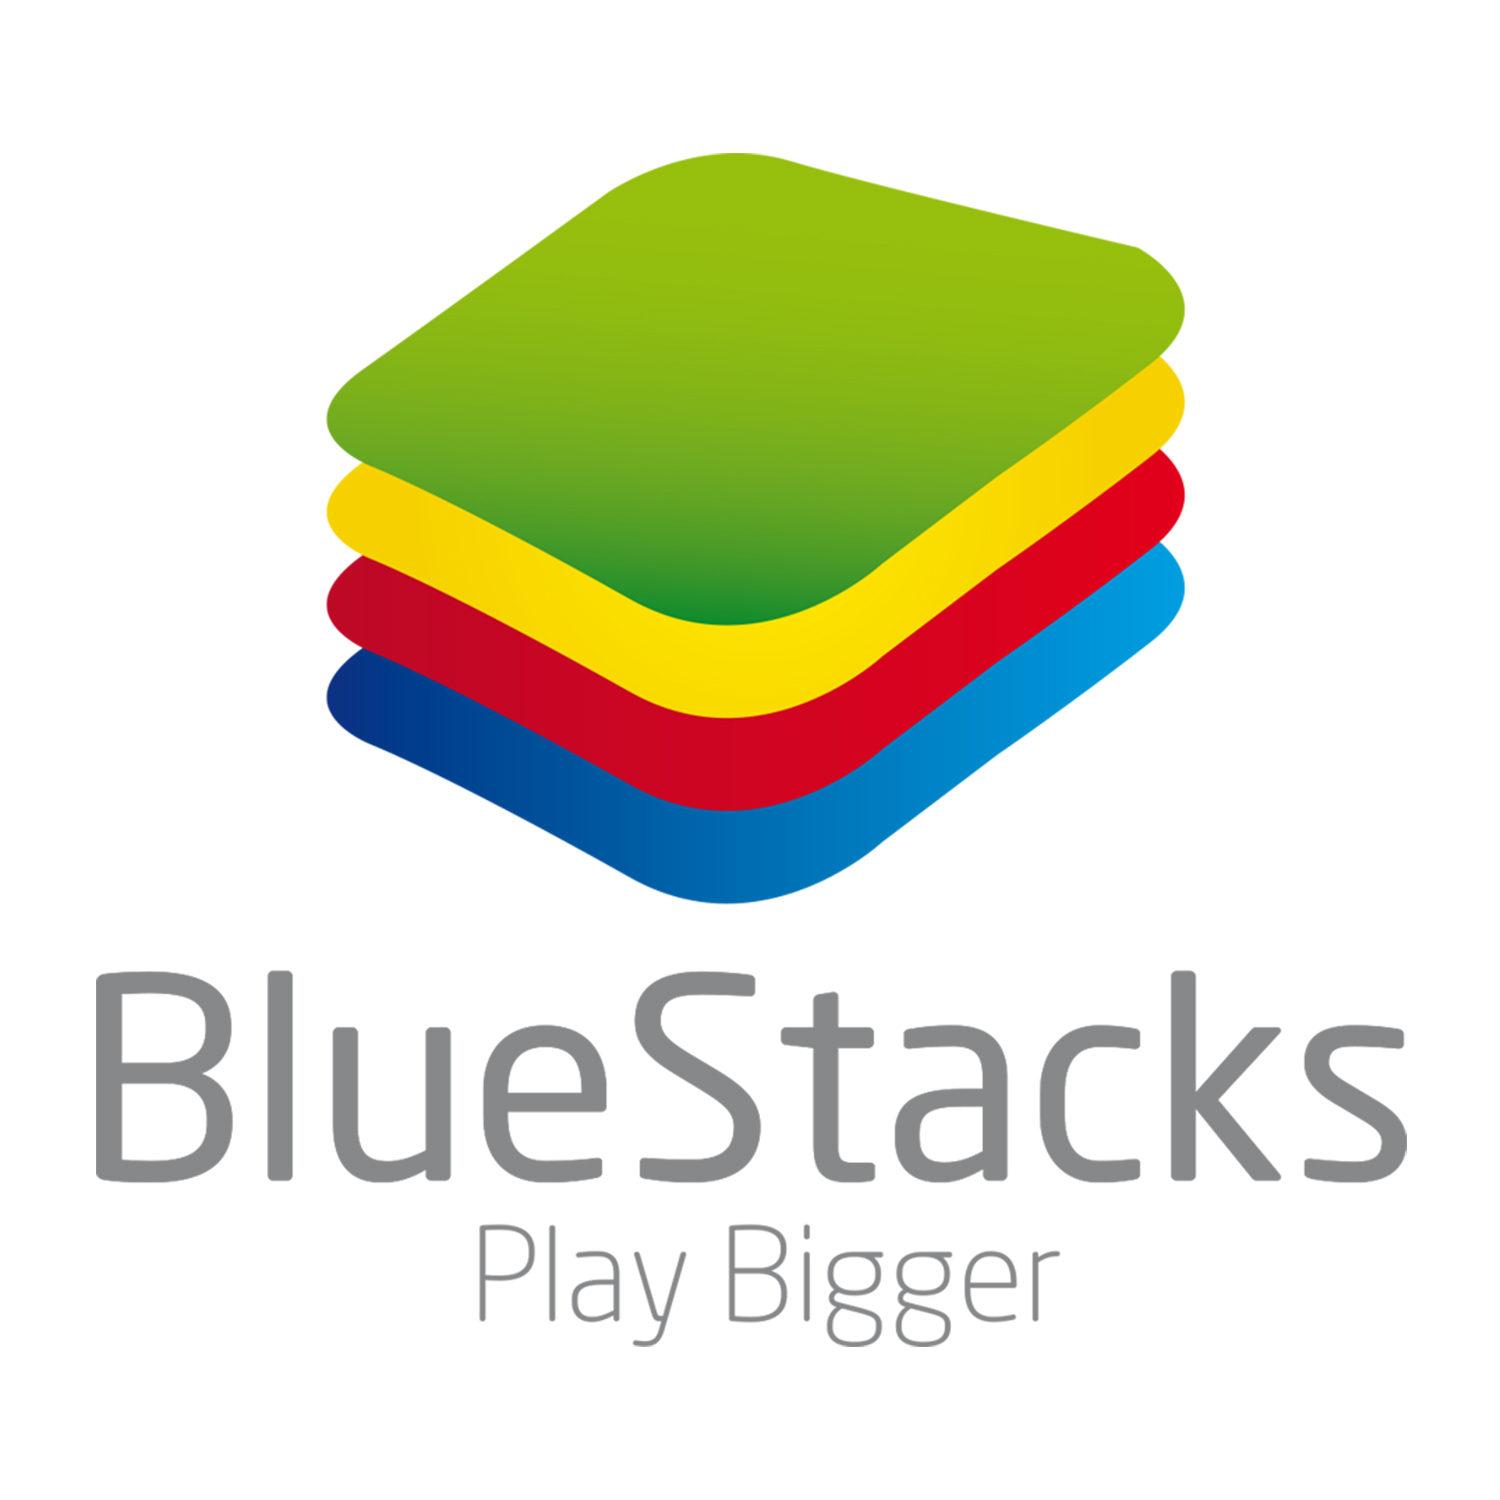 BlueStacks Logo Play Bigger